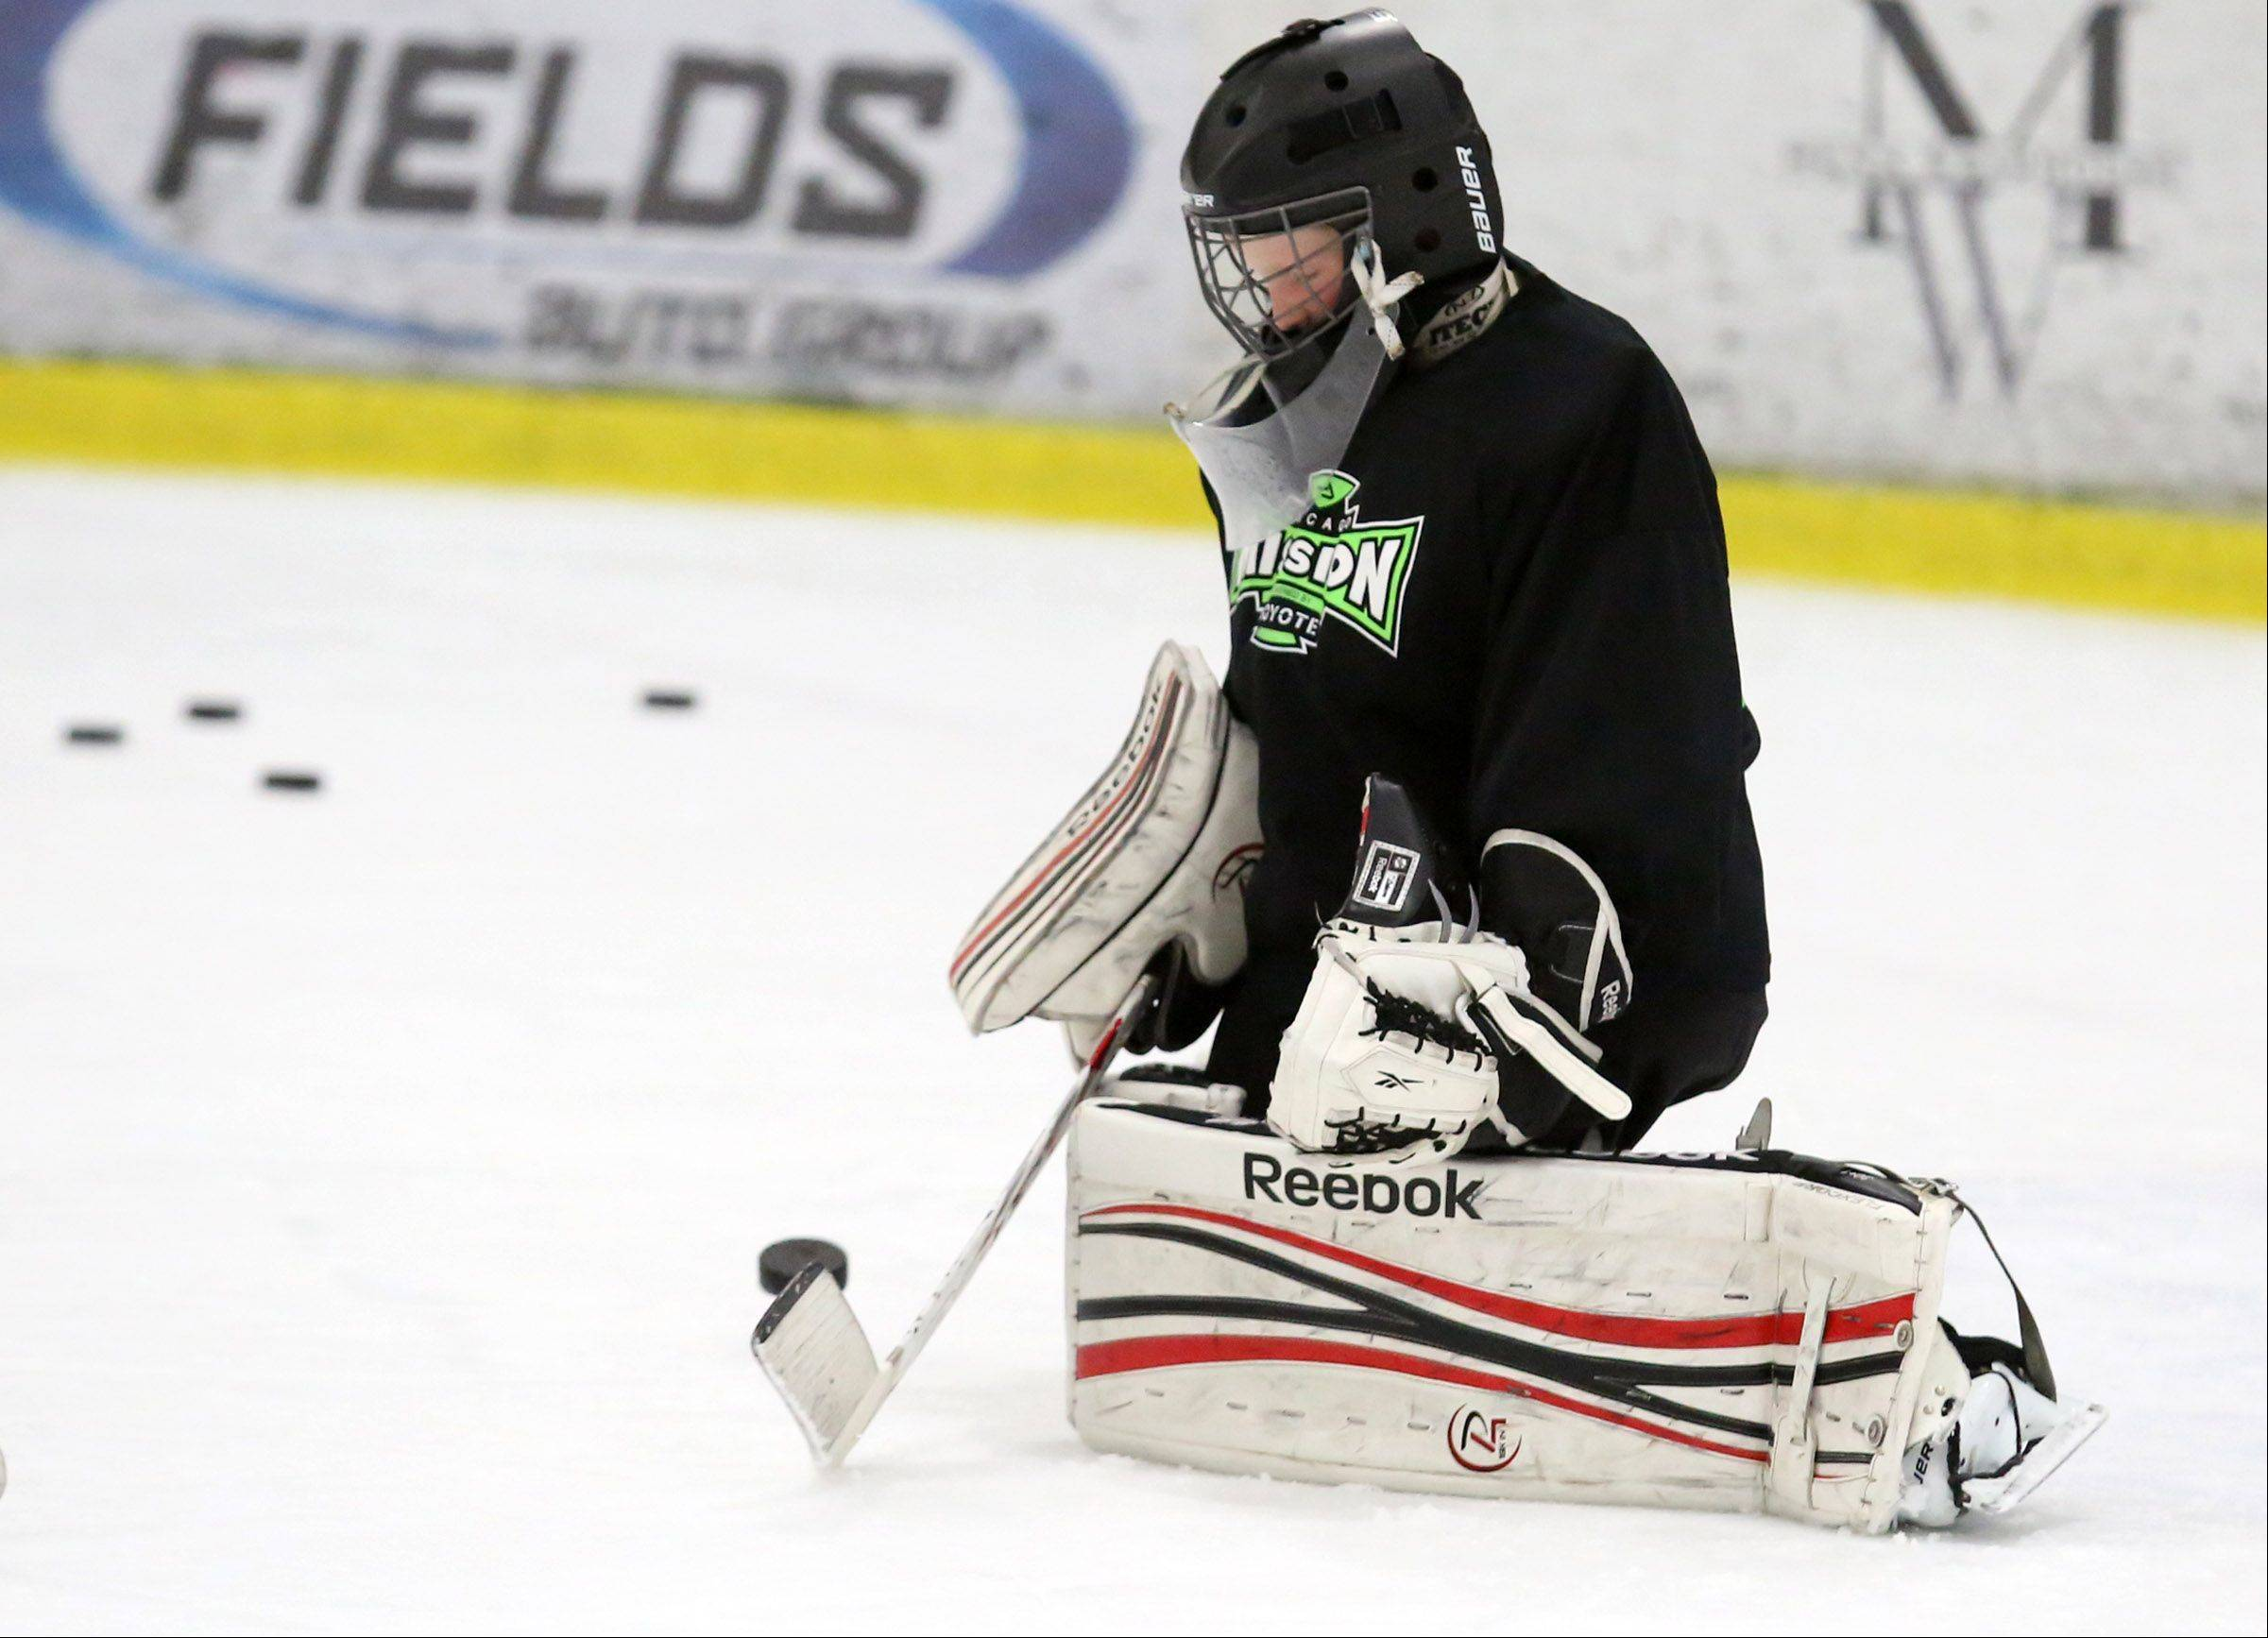 Goalie Jesse Easterwood, 10, of Chicago, blocks shots during a hockey camp Friday at Glacier Ice Arena in Vernon Hills.